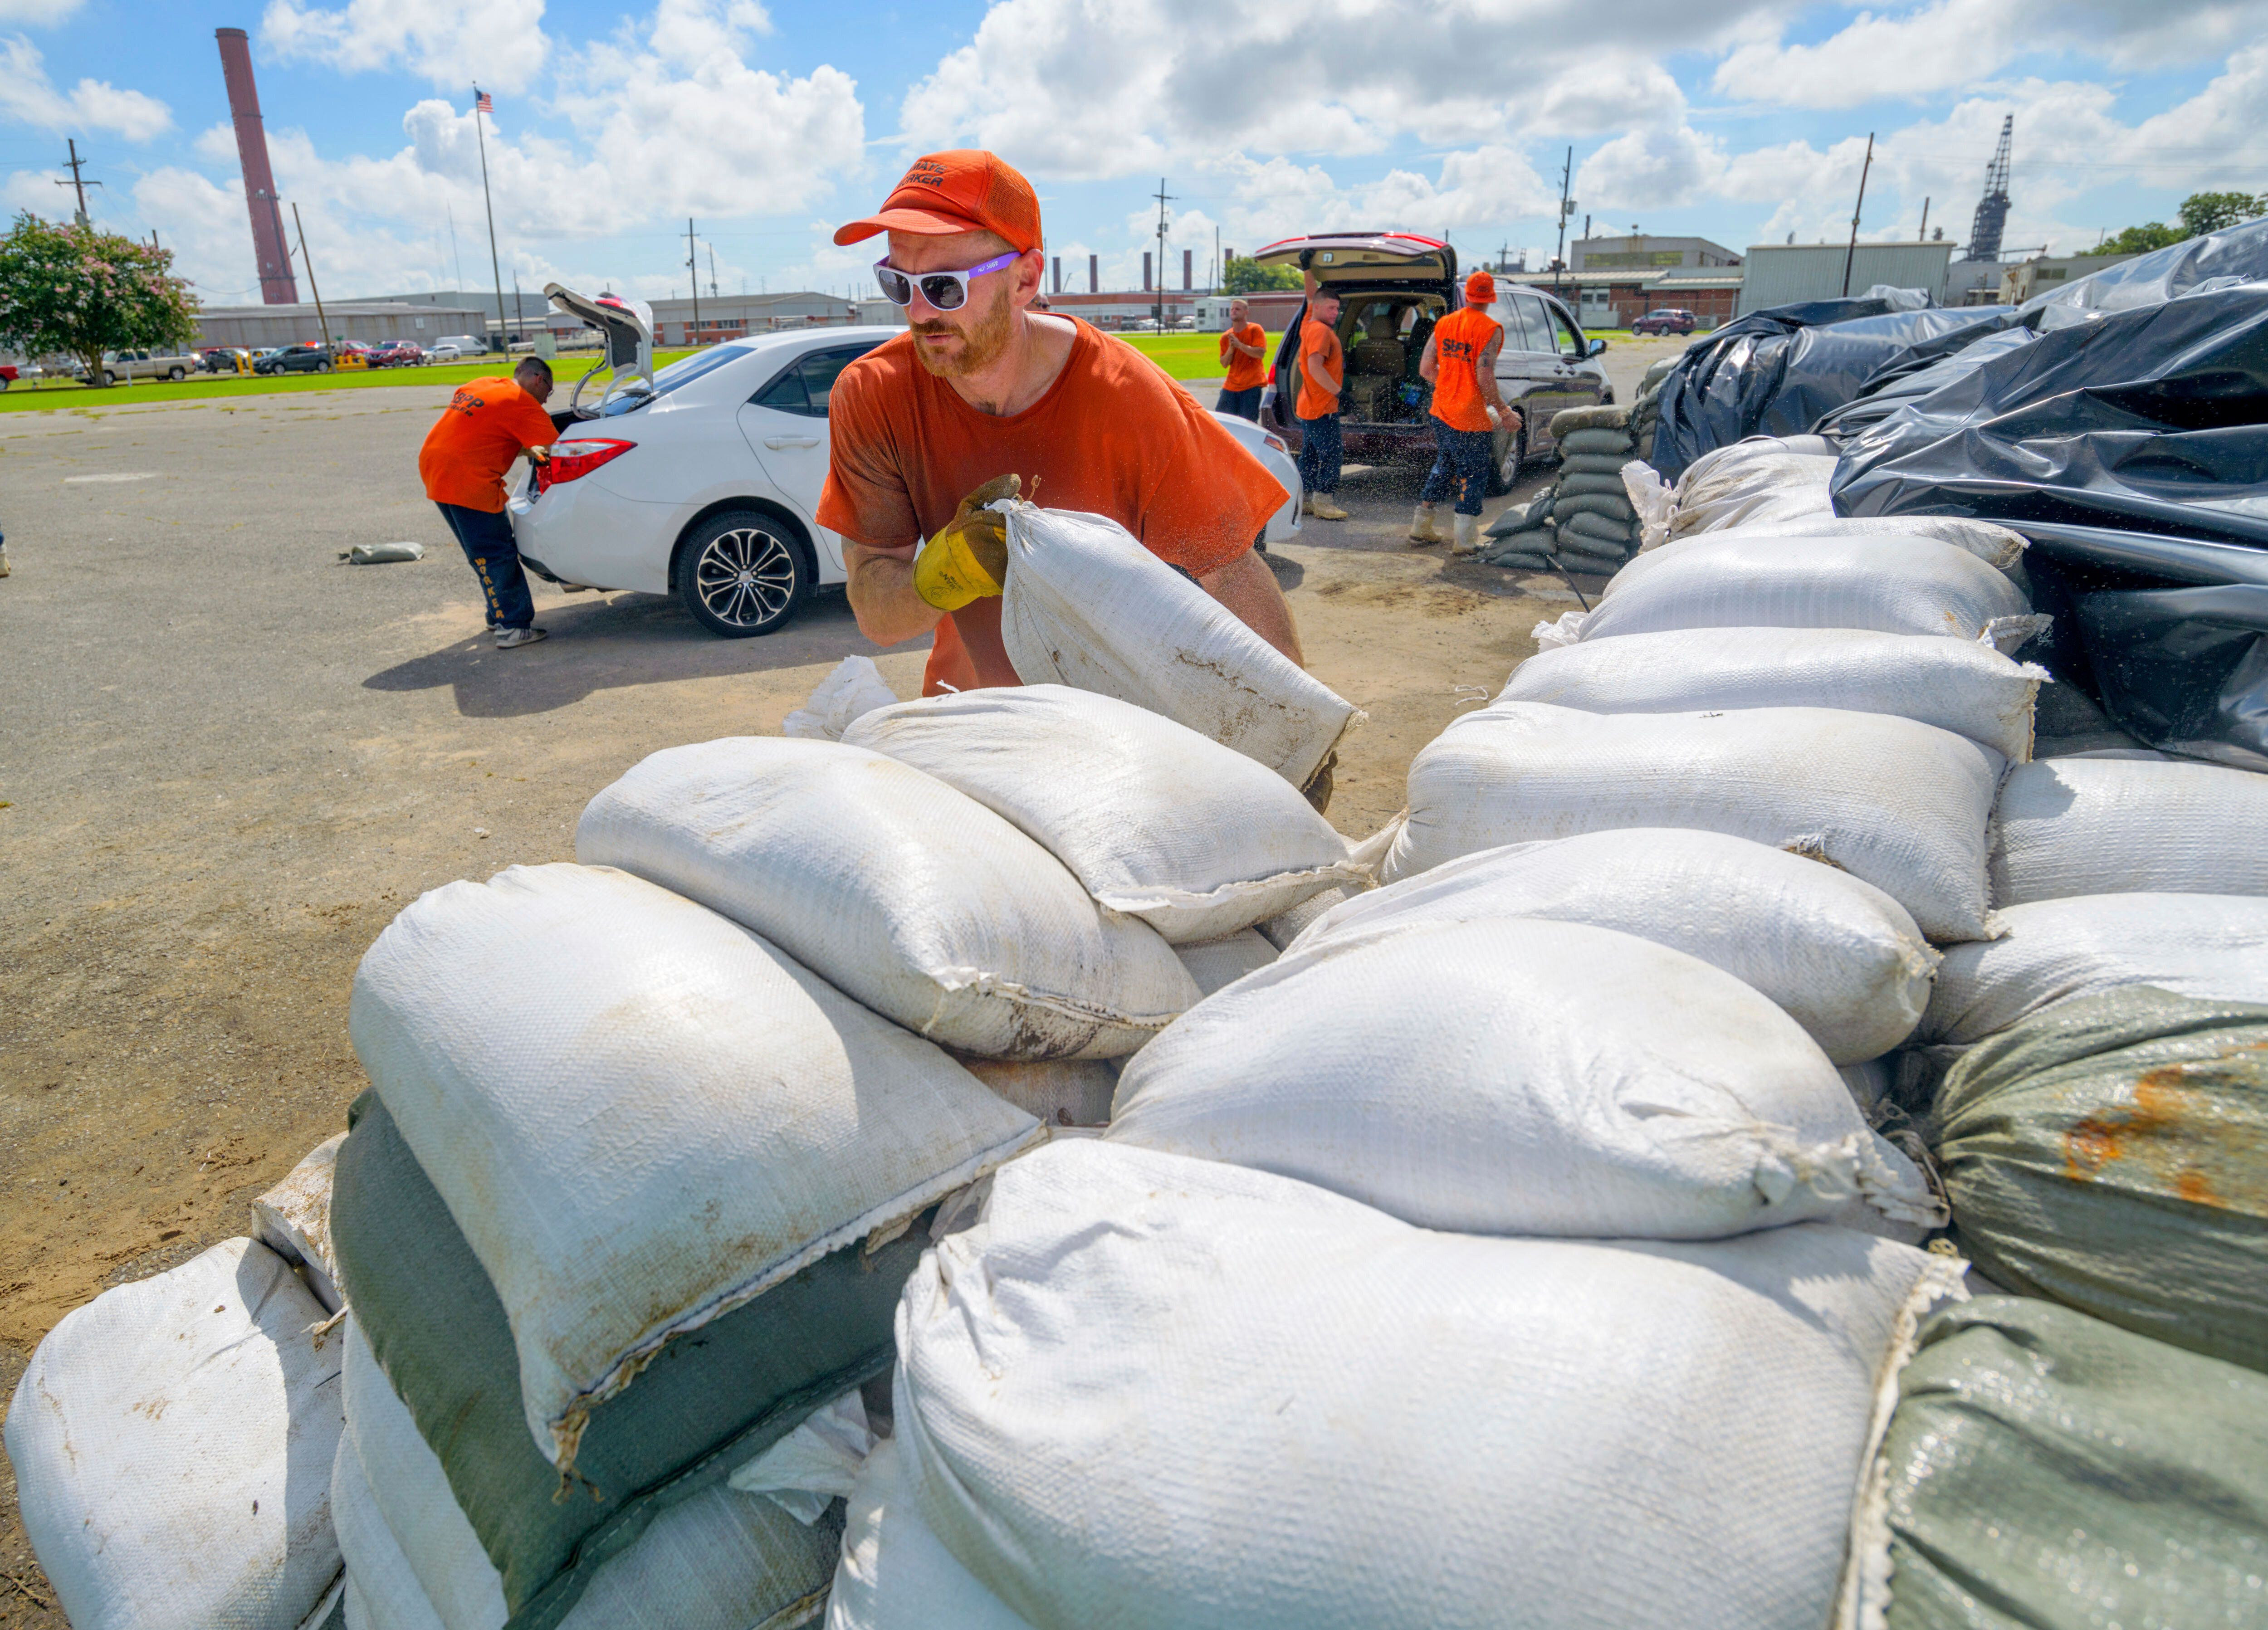 St. Bernard Parish Sheriff's Office inmate workers move free sandbags for residents in Chalmette, Louisiana, on Thursday. The Mississippi Emergency Management Agency is telling people in the southern part of the state to be prepared for heavy rain from Tropical Storm Barry.